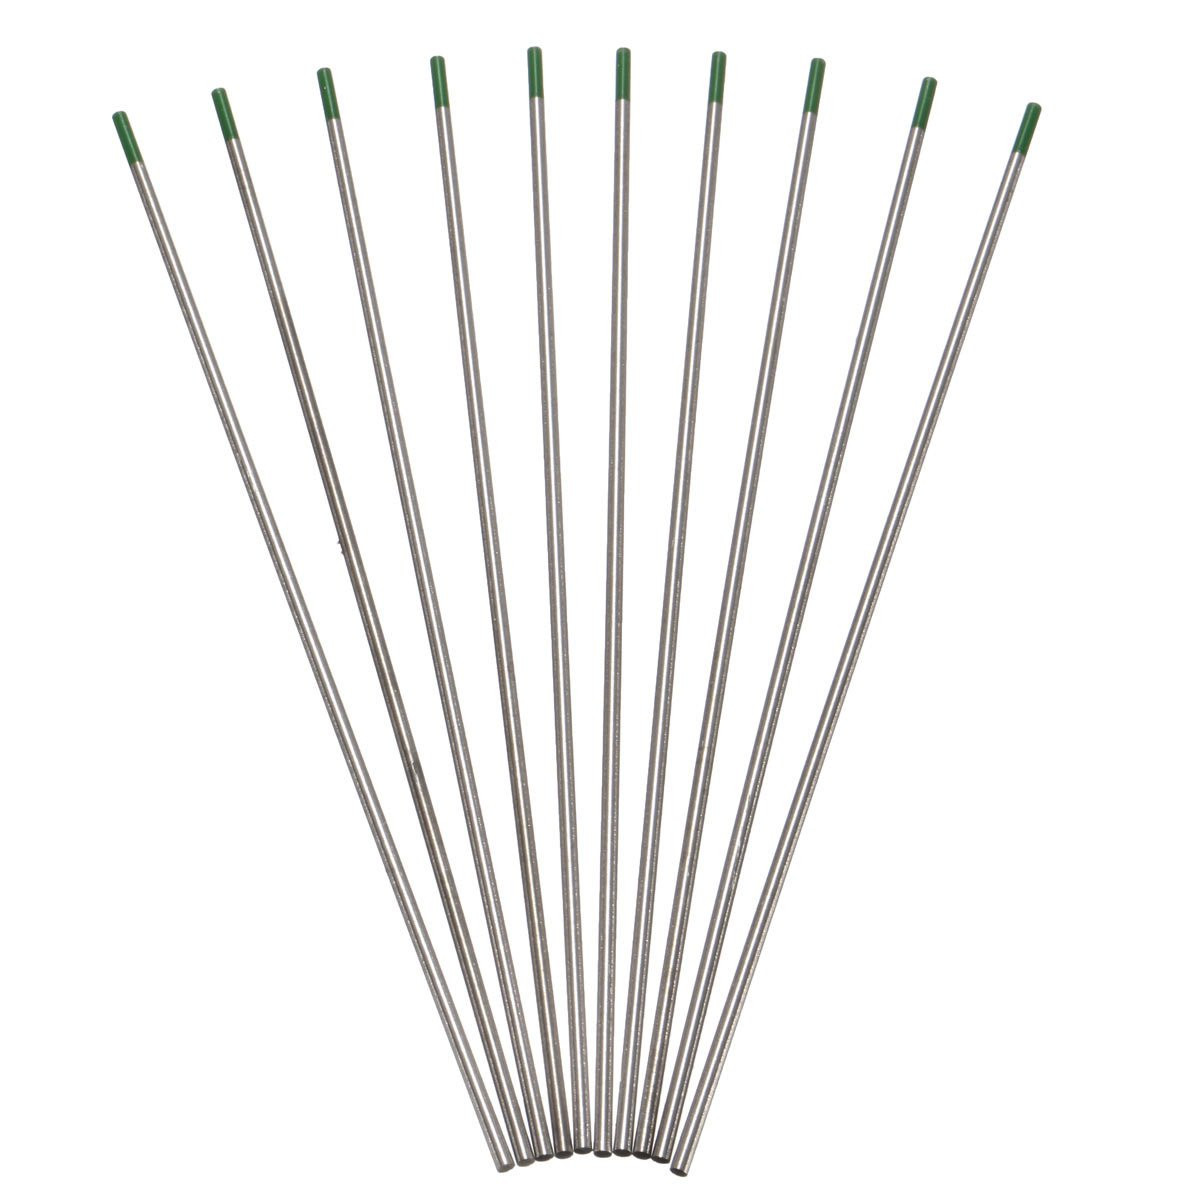 10Pcs 175×2.4mm WP Green Welding Tungsten Electrode